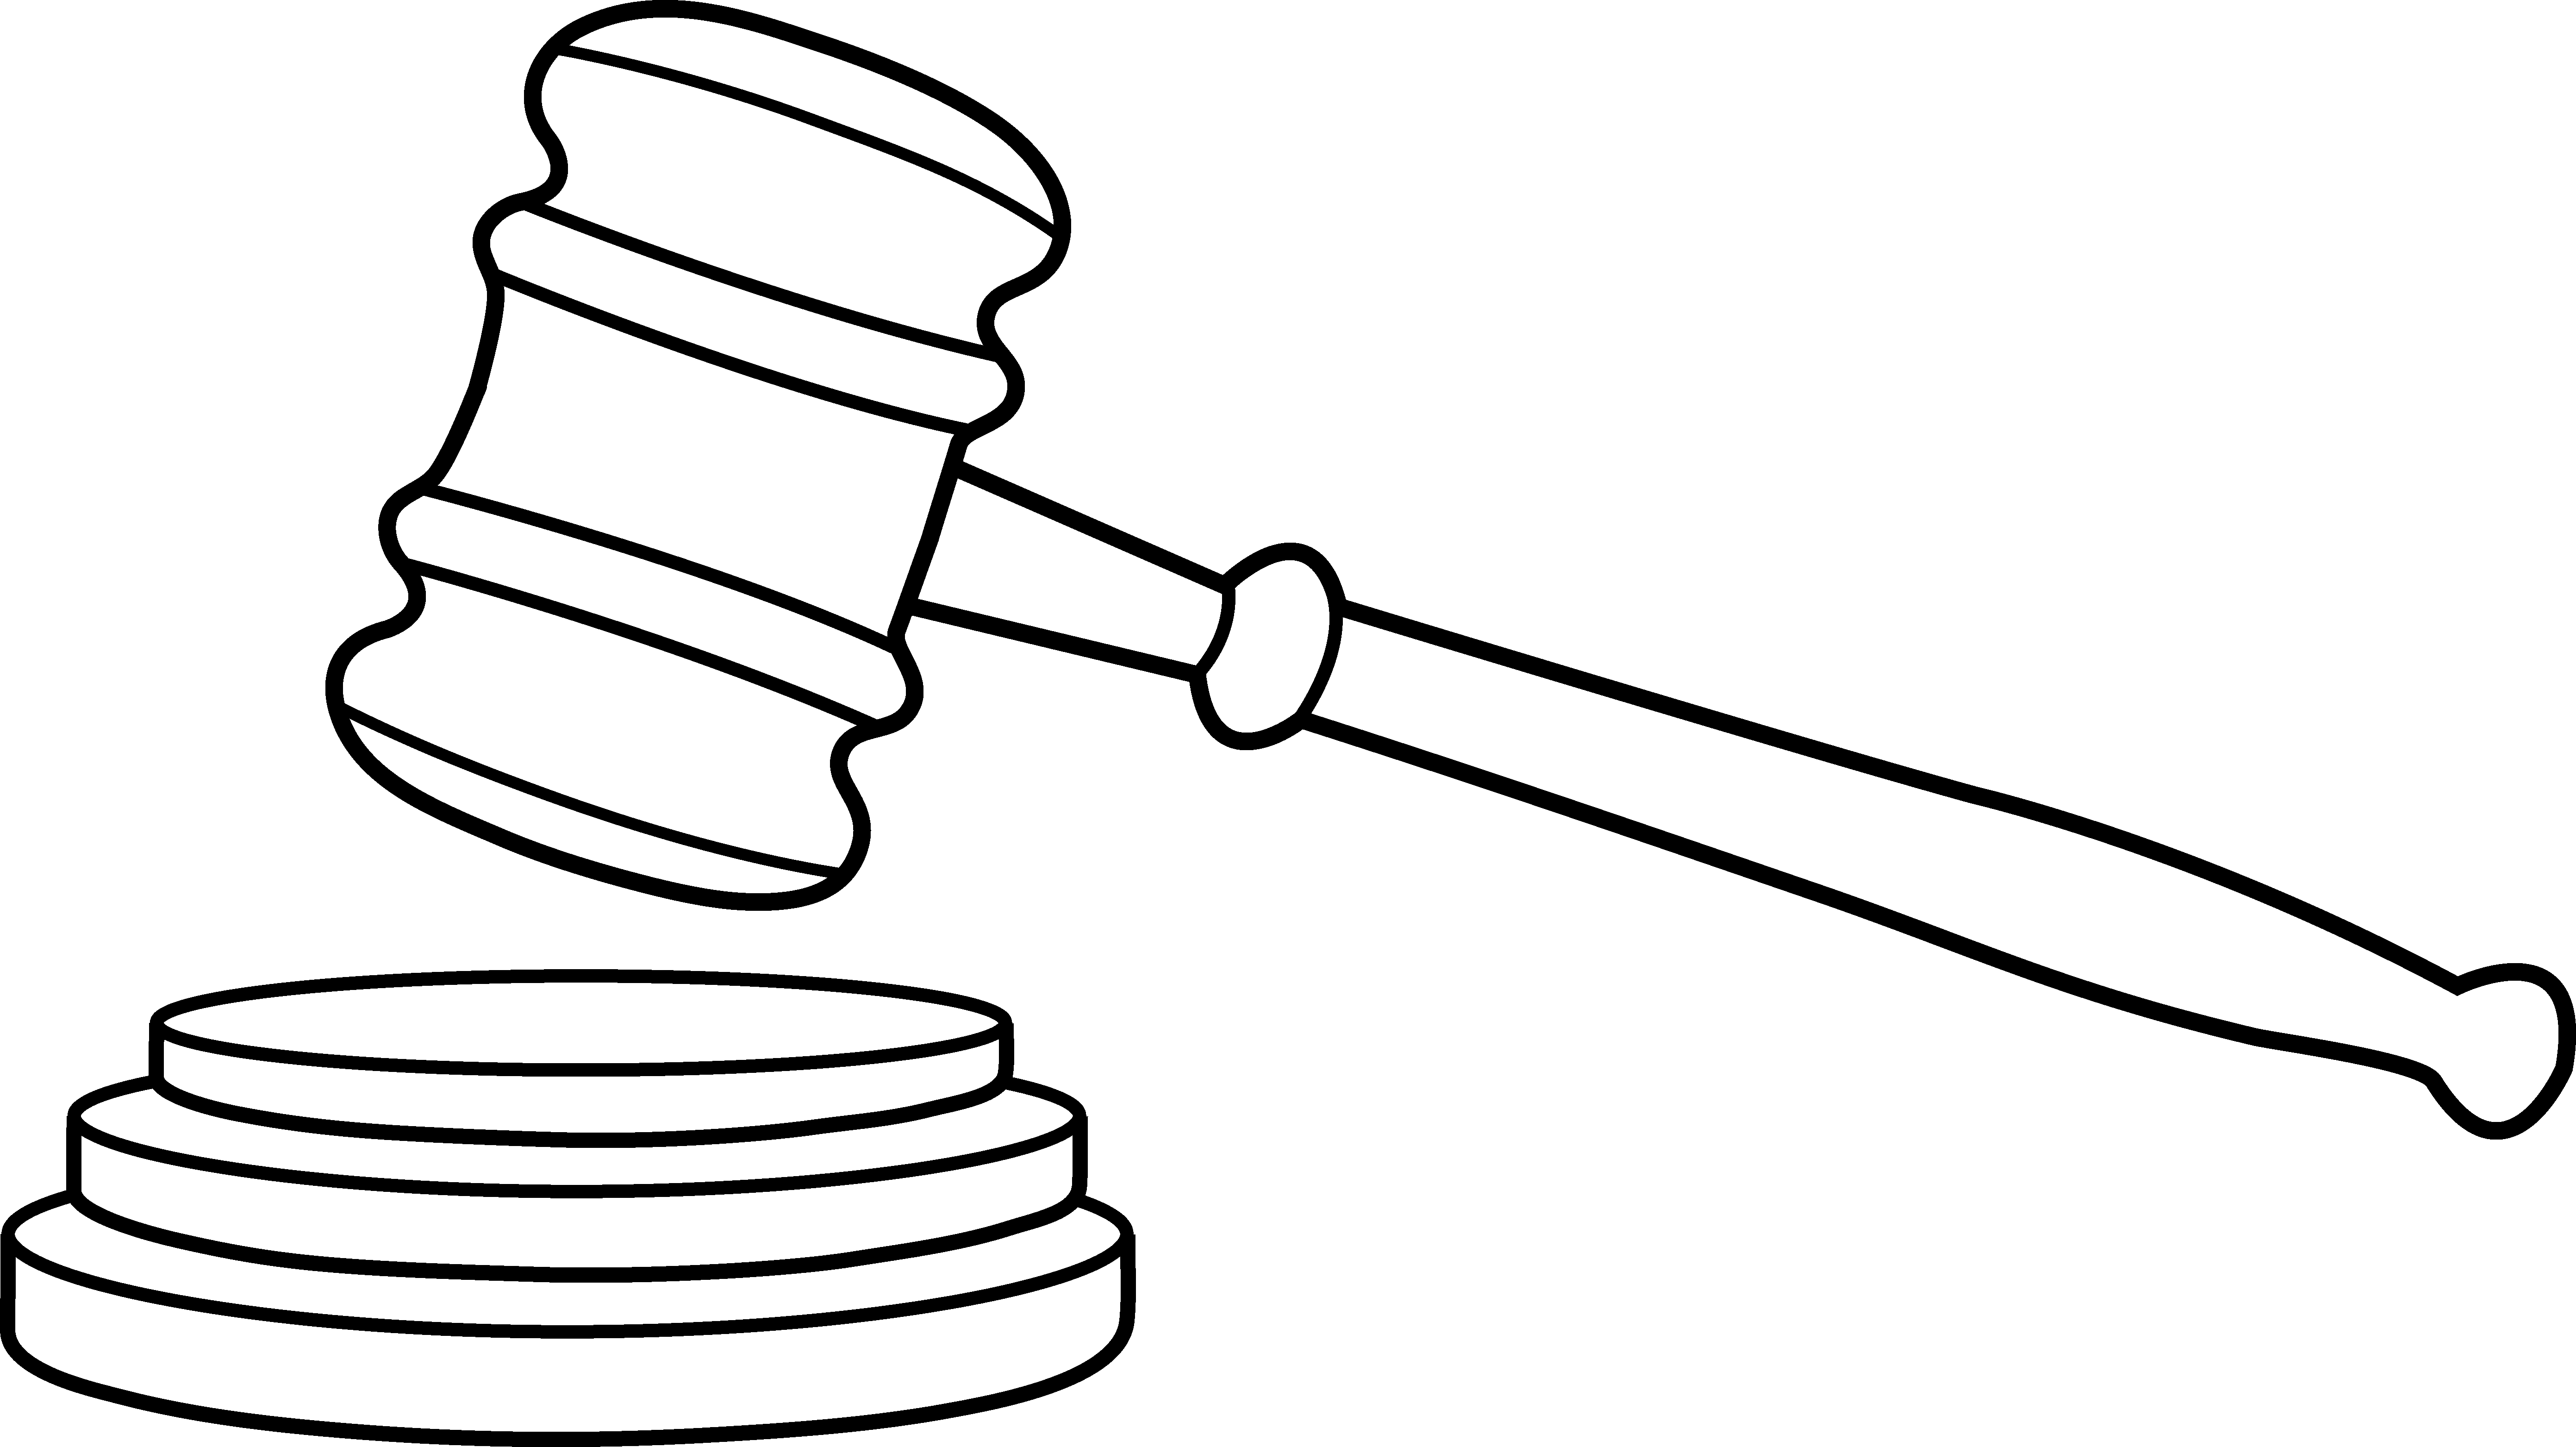 Gavel clipart. Fresh gallery digital collection